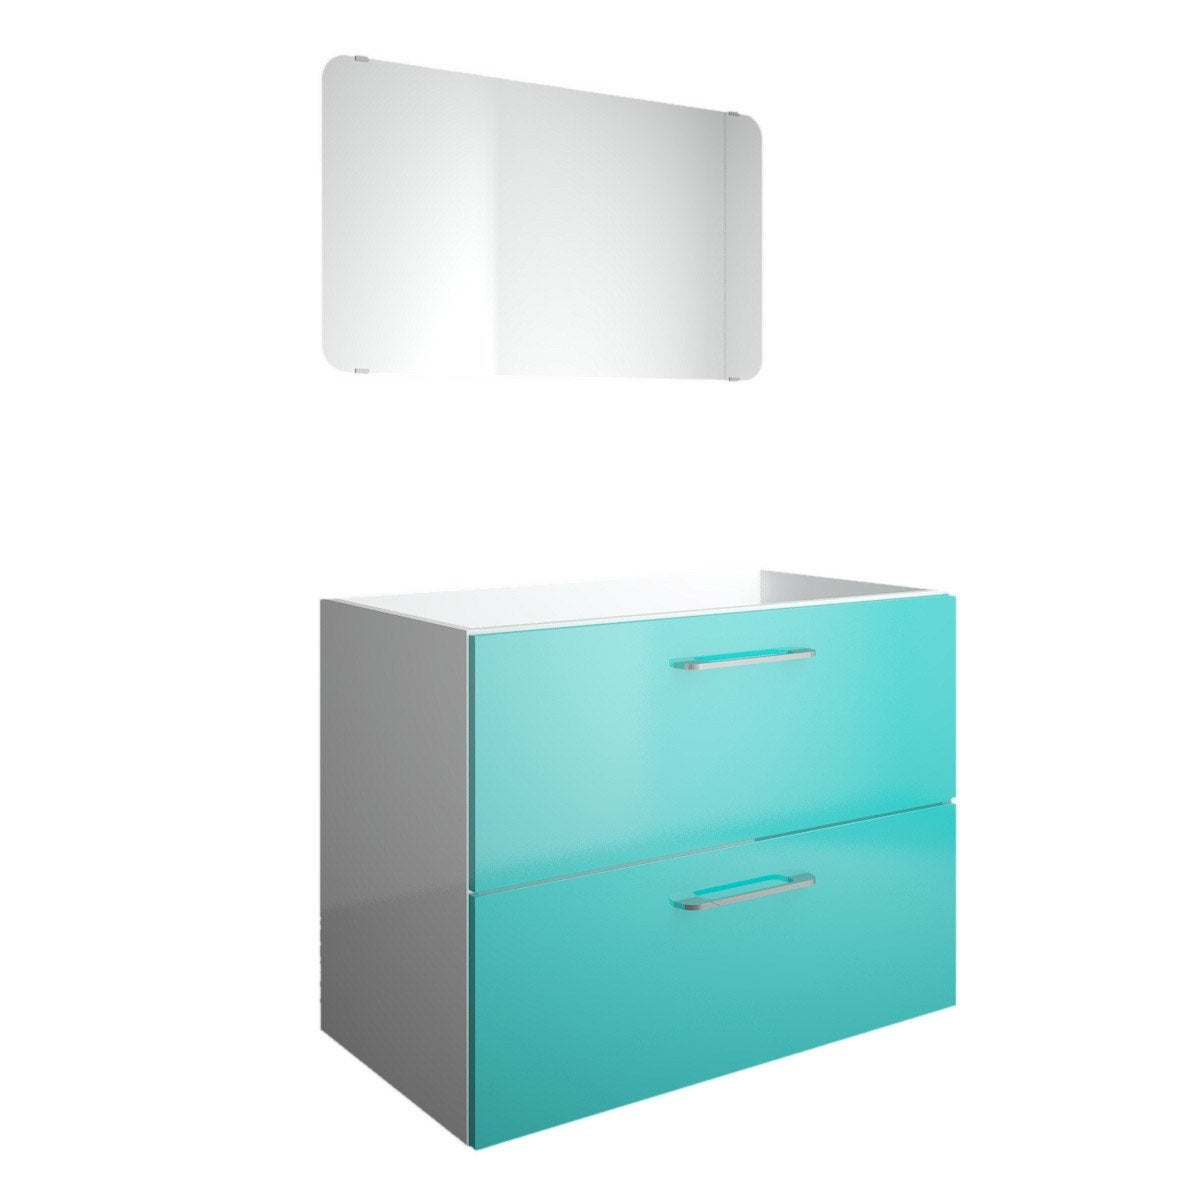 Meuble sous vasque x x cm bleu happy for Meuble vasque 70 cm leroy merlin